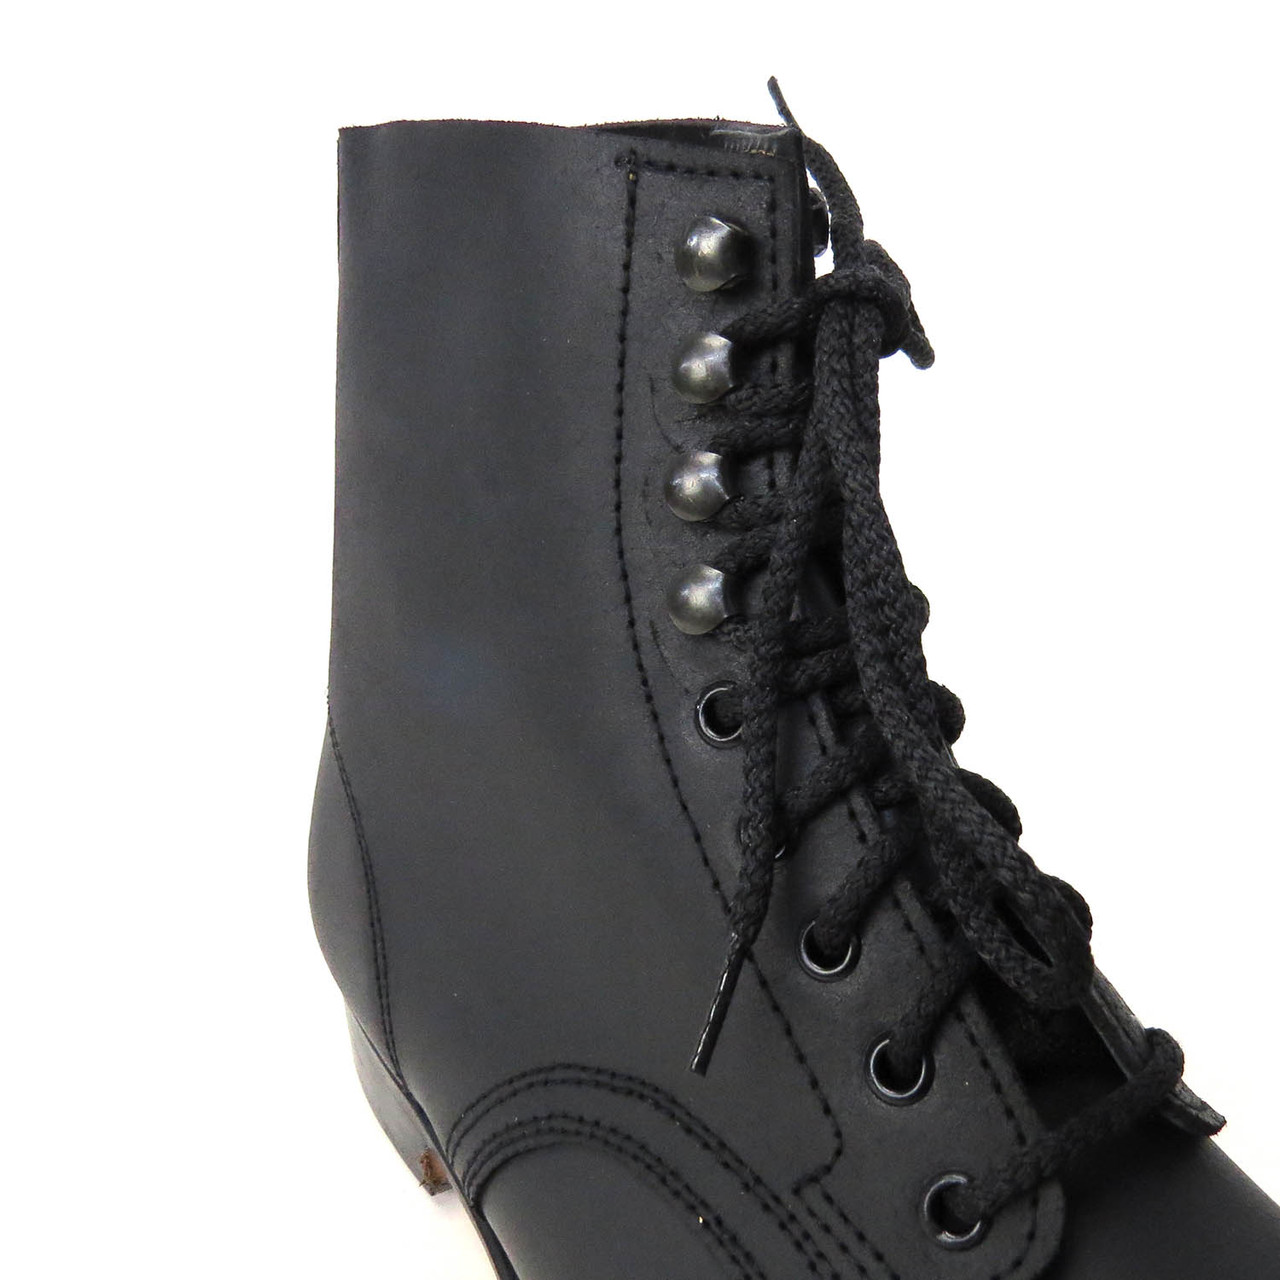 Panzer Boots with Speed Laces